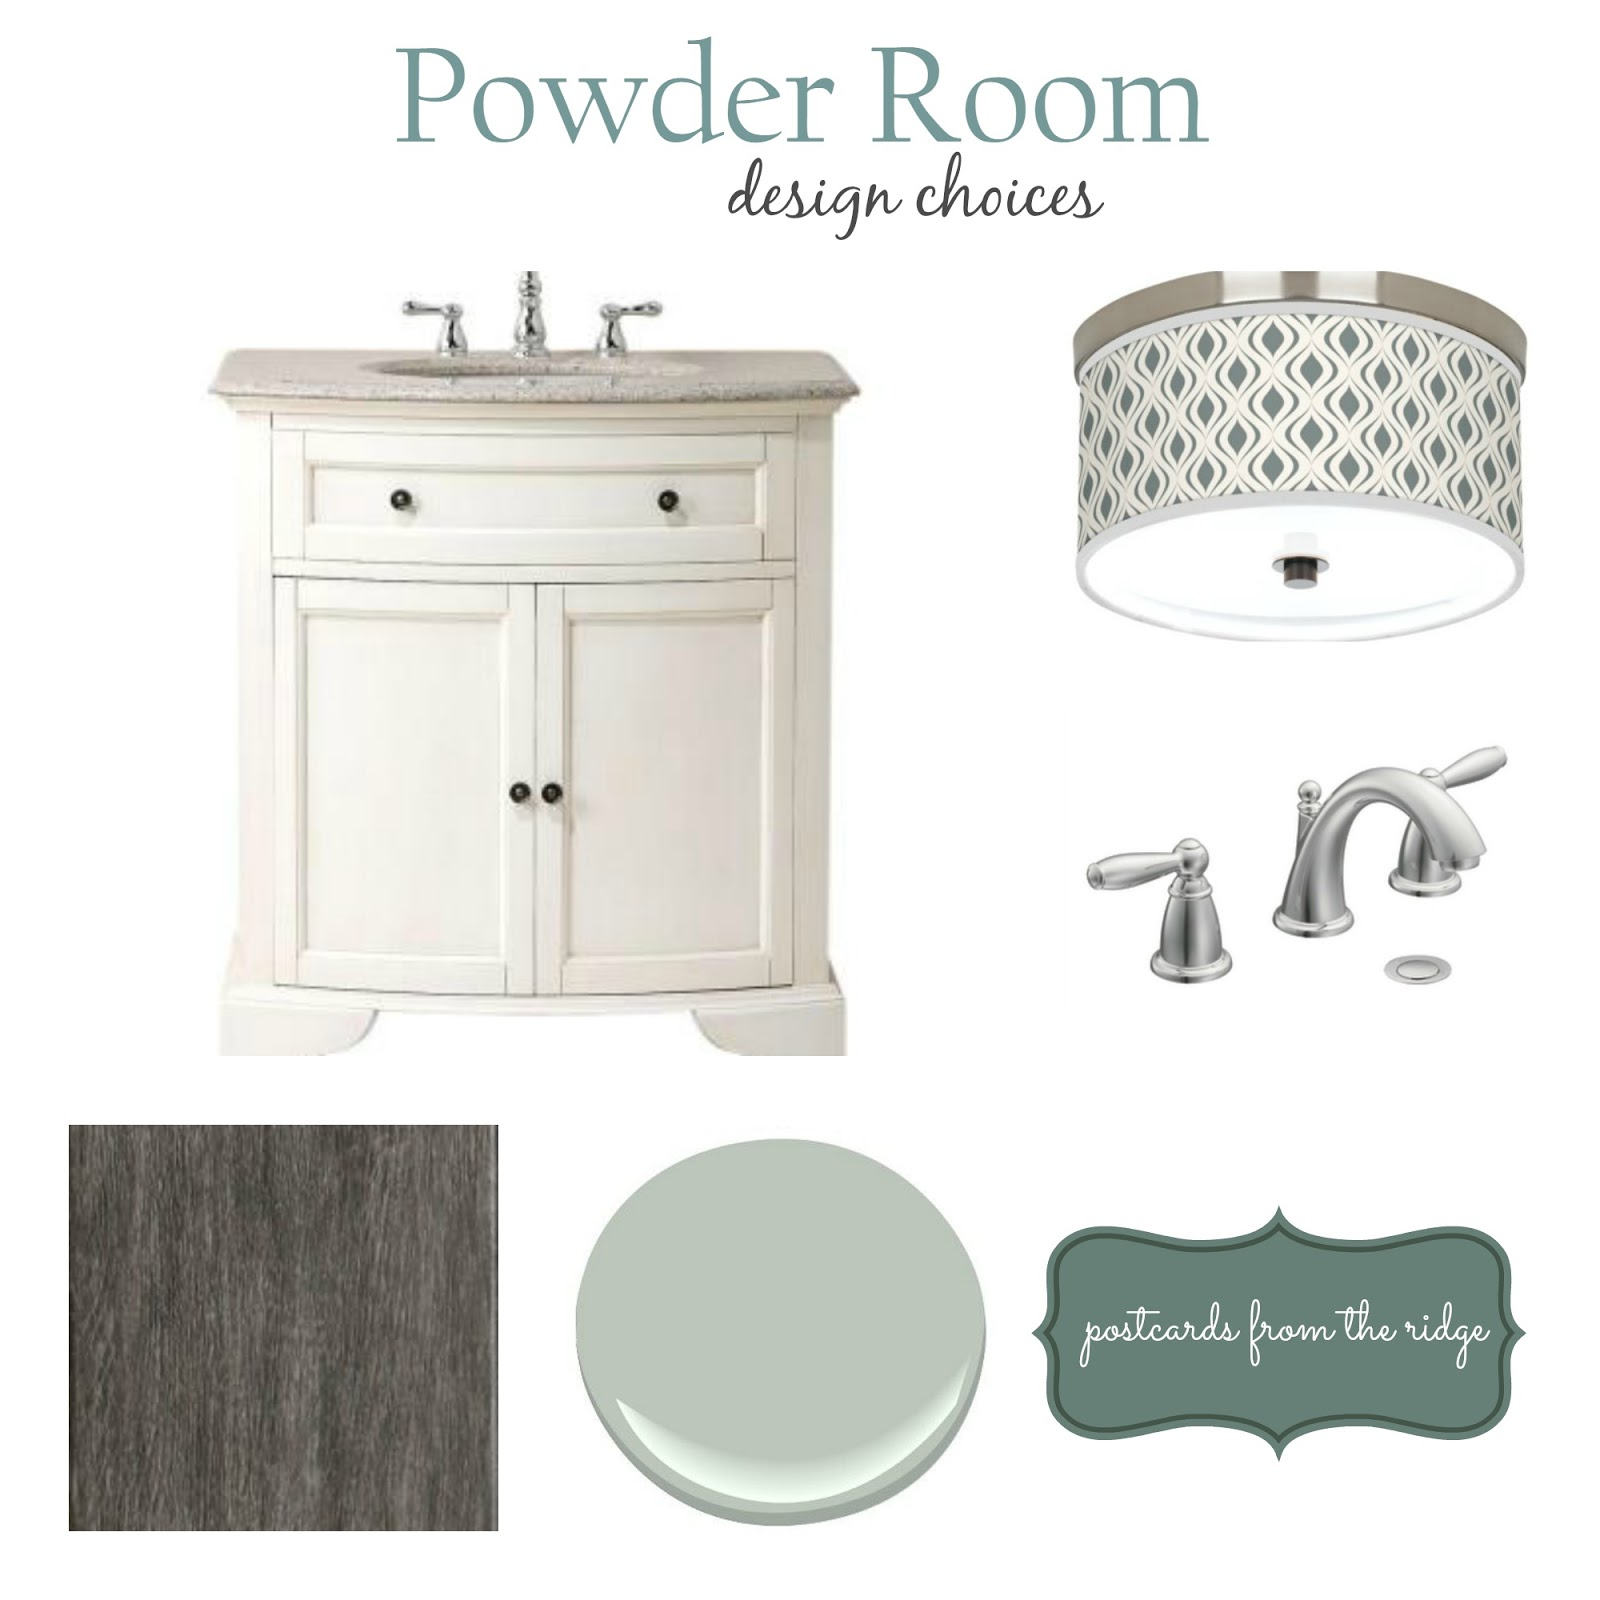 Powder Room Plans Tales Of Our Very Own Fixer Upper Postcards From The Ridge